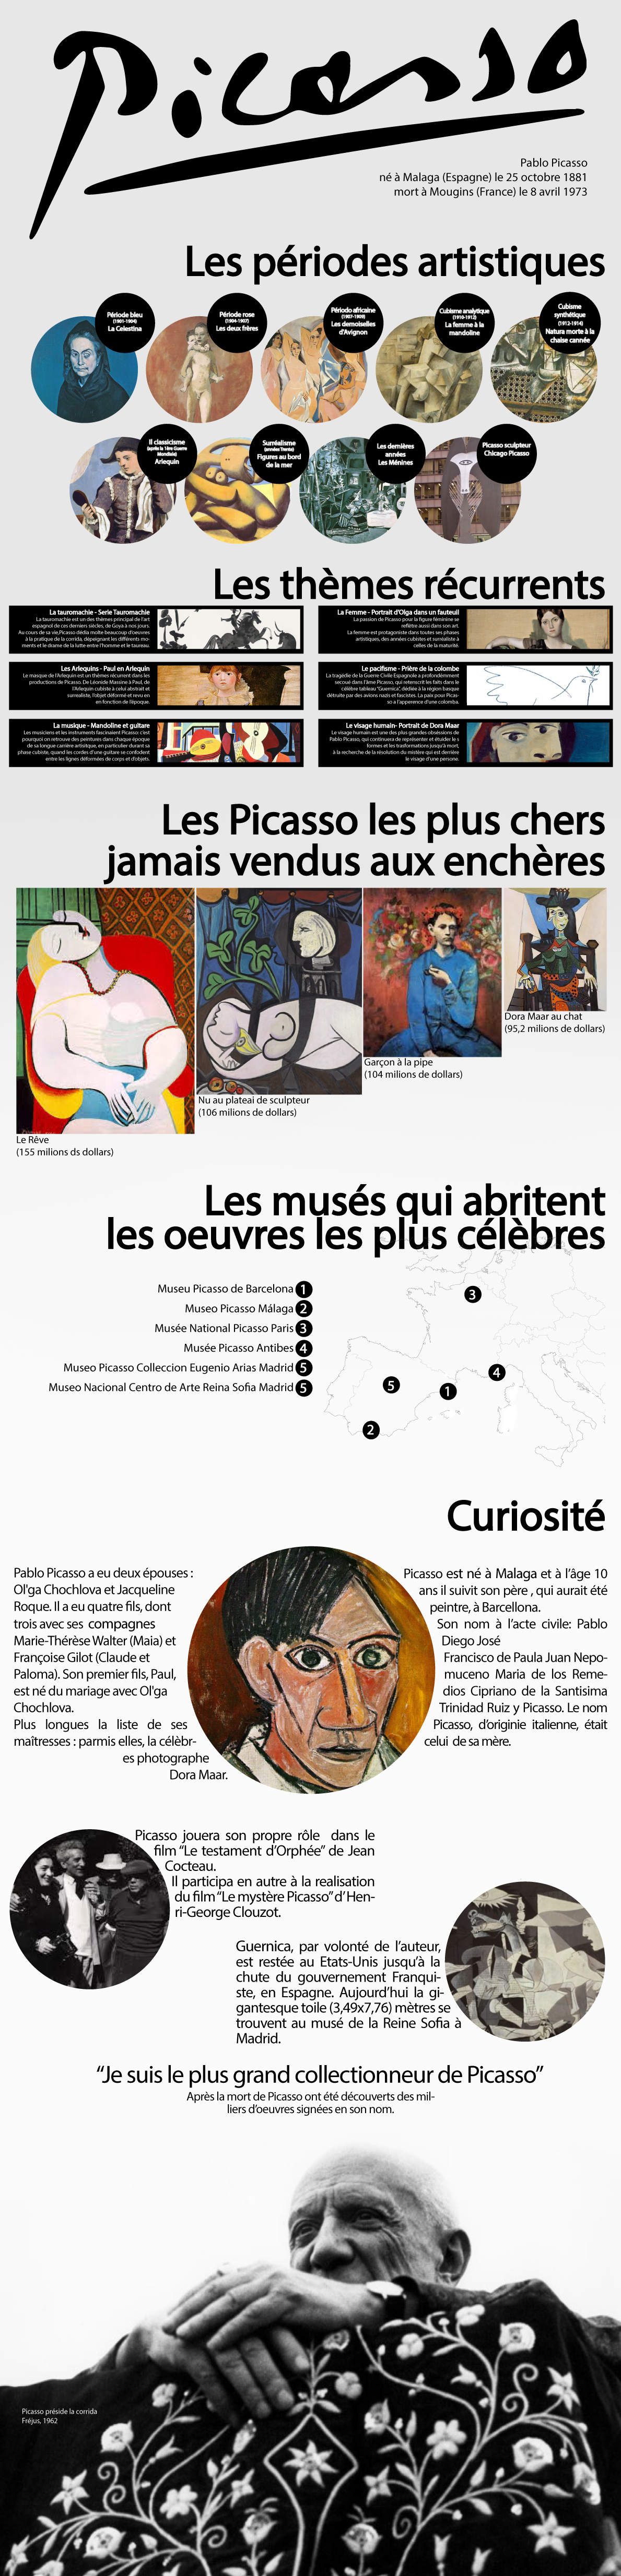 picasso-infographie-fr-s